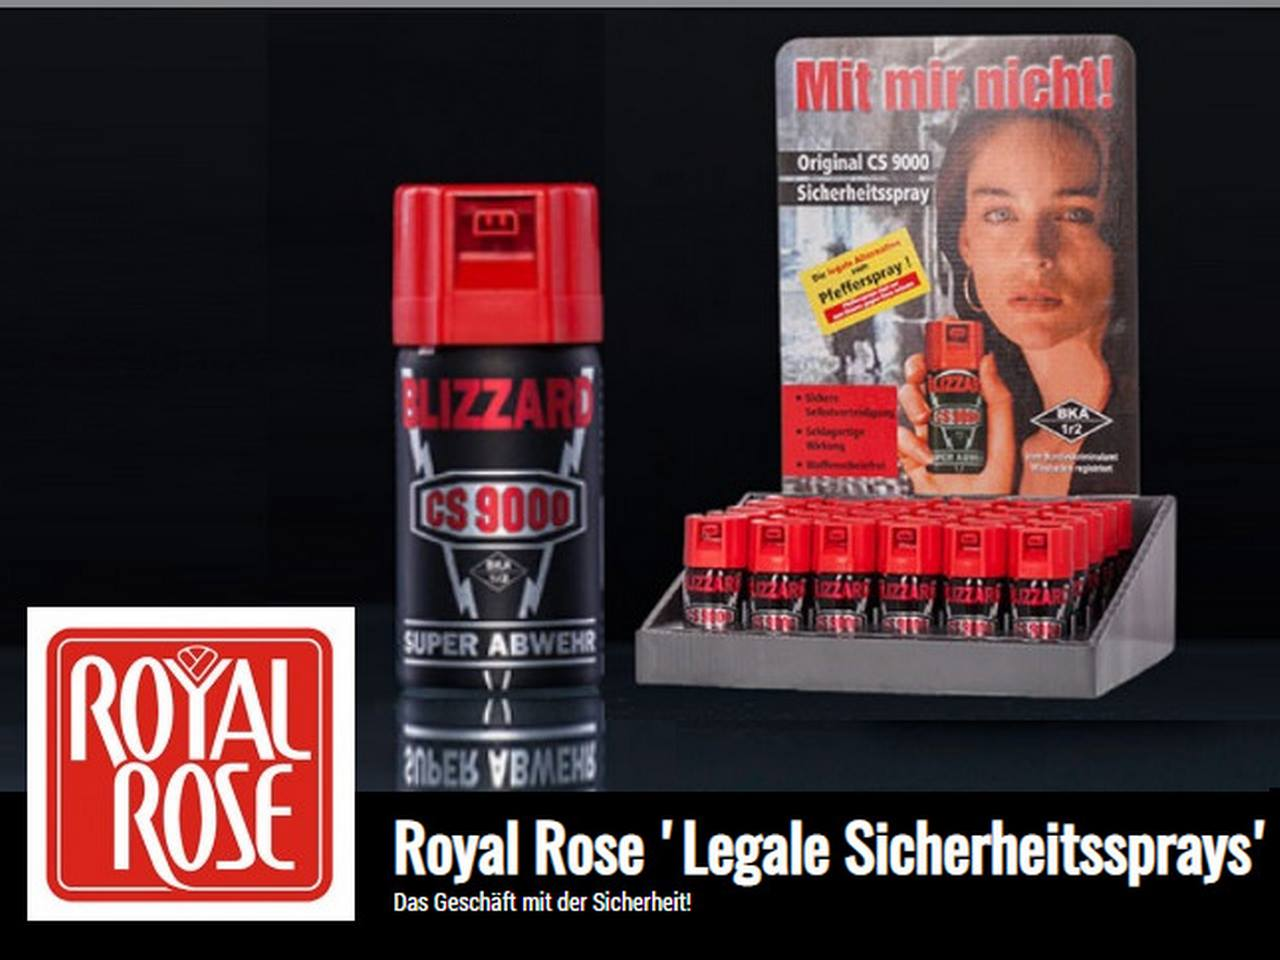 Royal Rose Sicherheitssprays